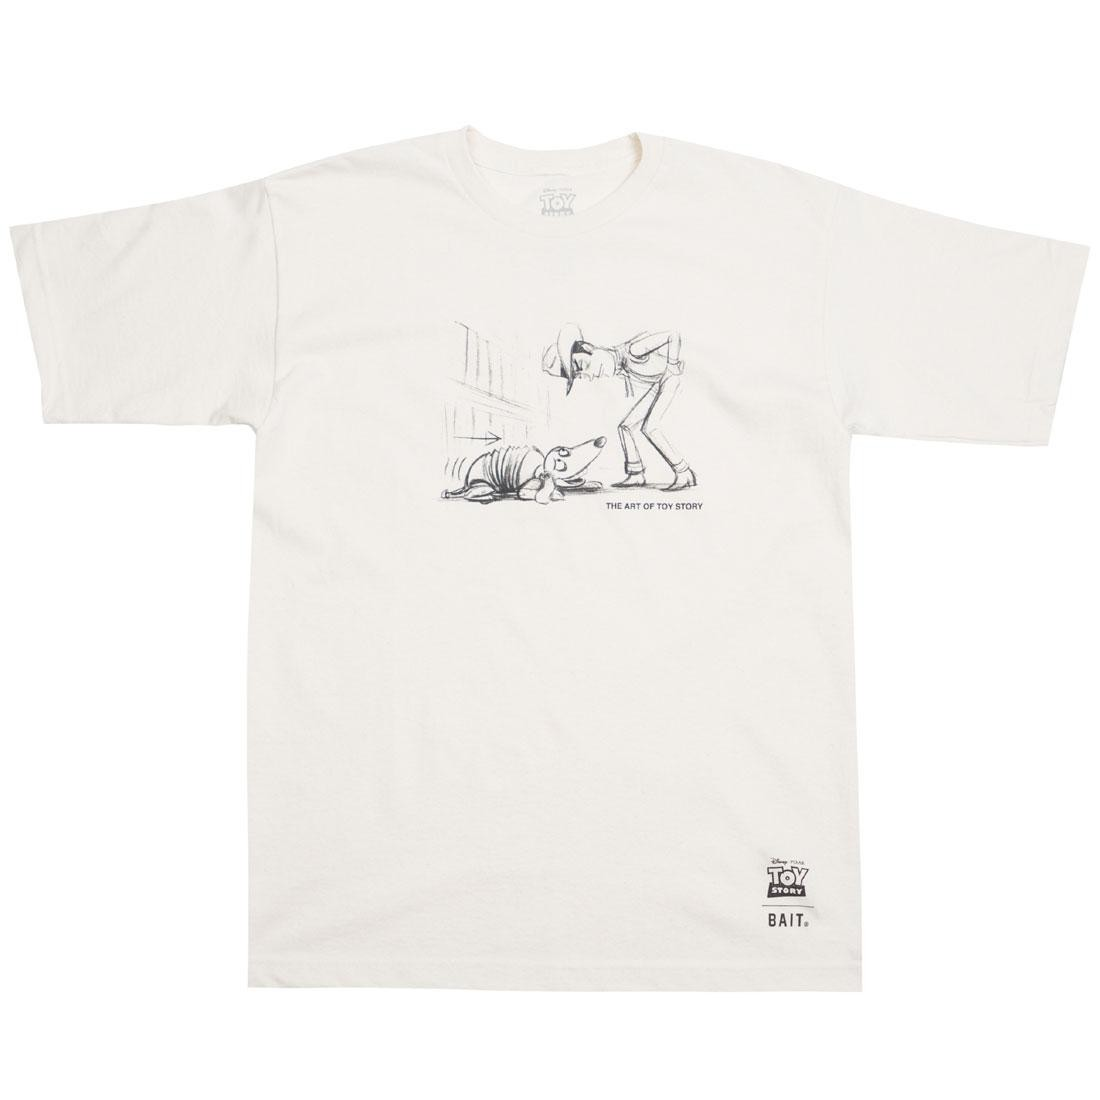 BAIT x Toy Story Men Woody And Slinky Tee (white / bone)